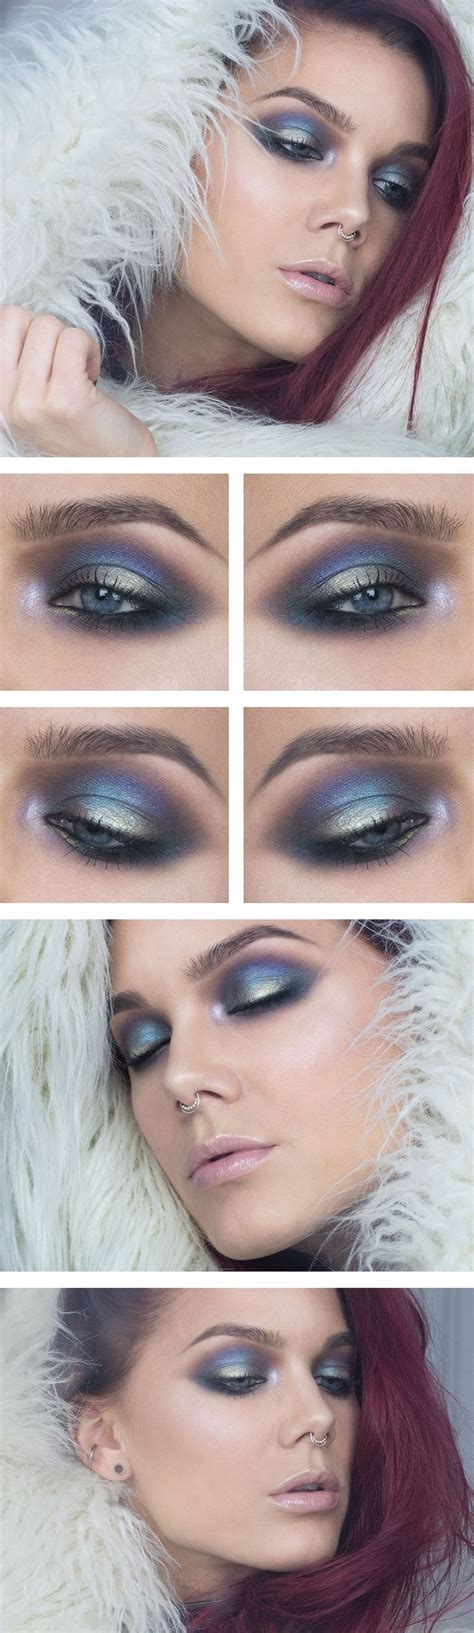 The One Lash Resistance Mascara Black 309 best images about eye makeup looks on makeup and eyeliner